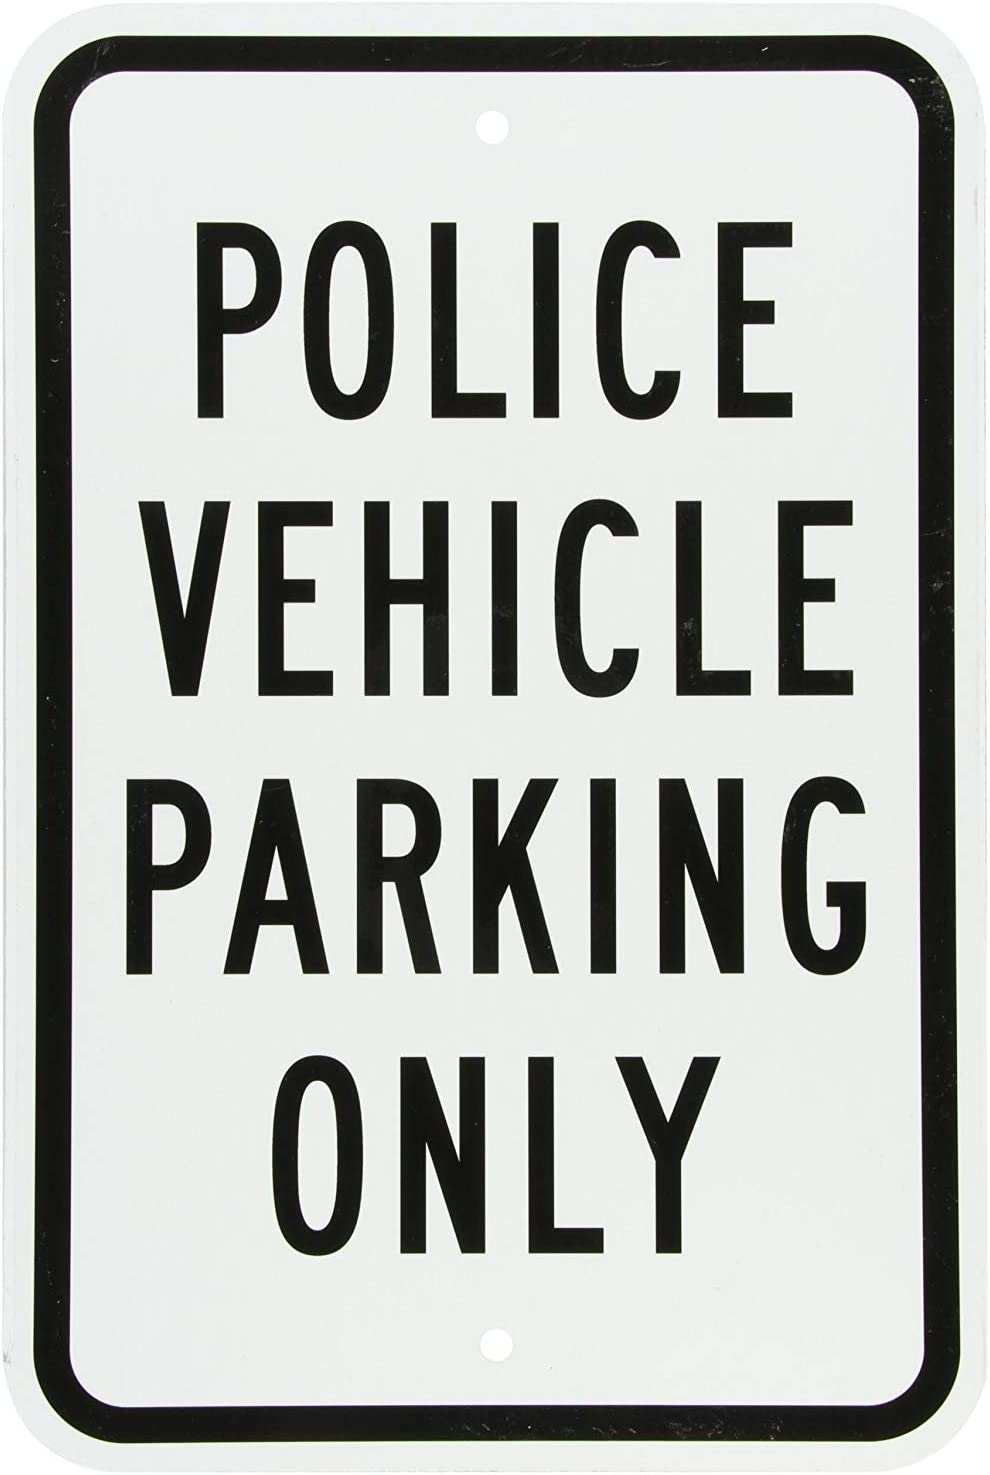 Legend Police Vehicle Parking Only GIGIEU Aluminium-Schild Schwarz auf Wei/ß 18 x 12